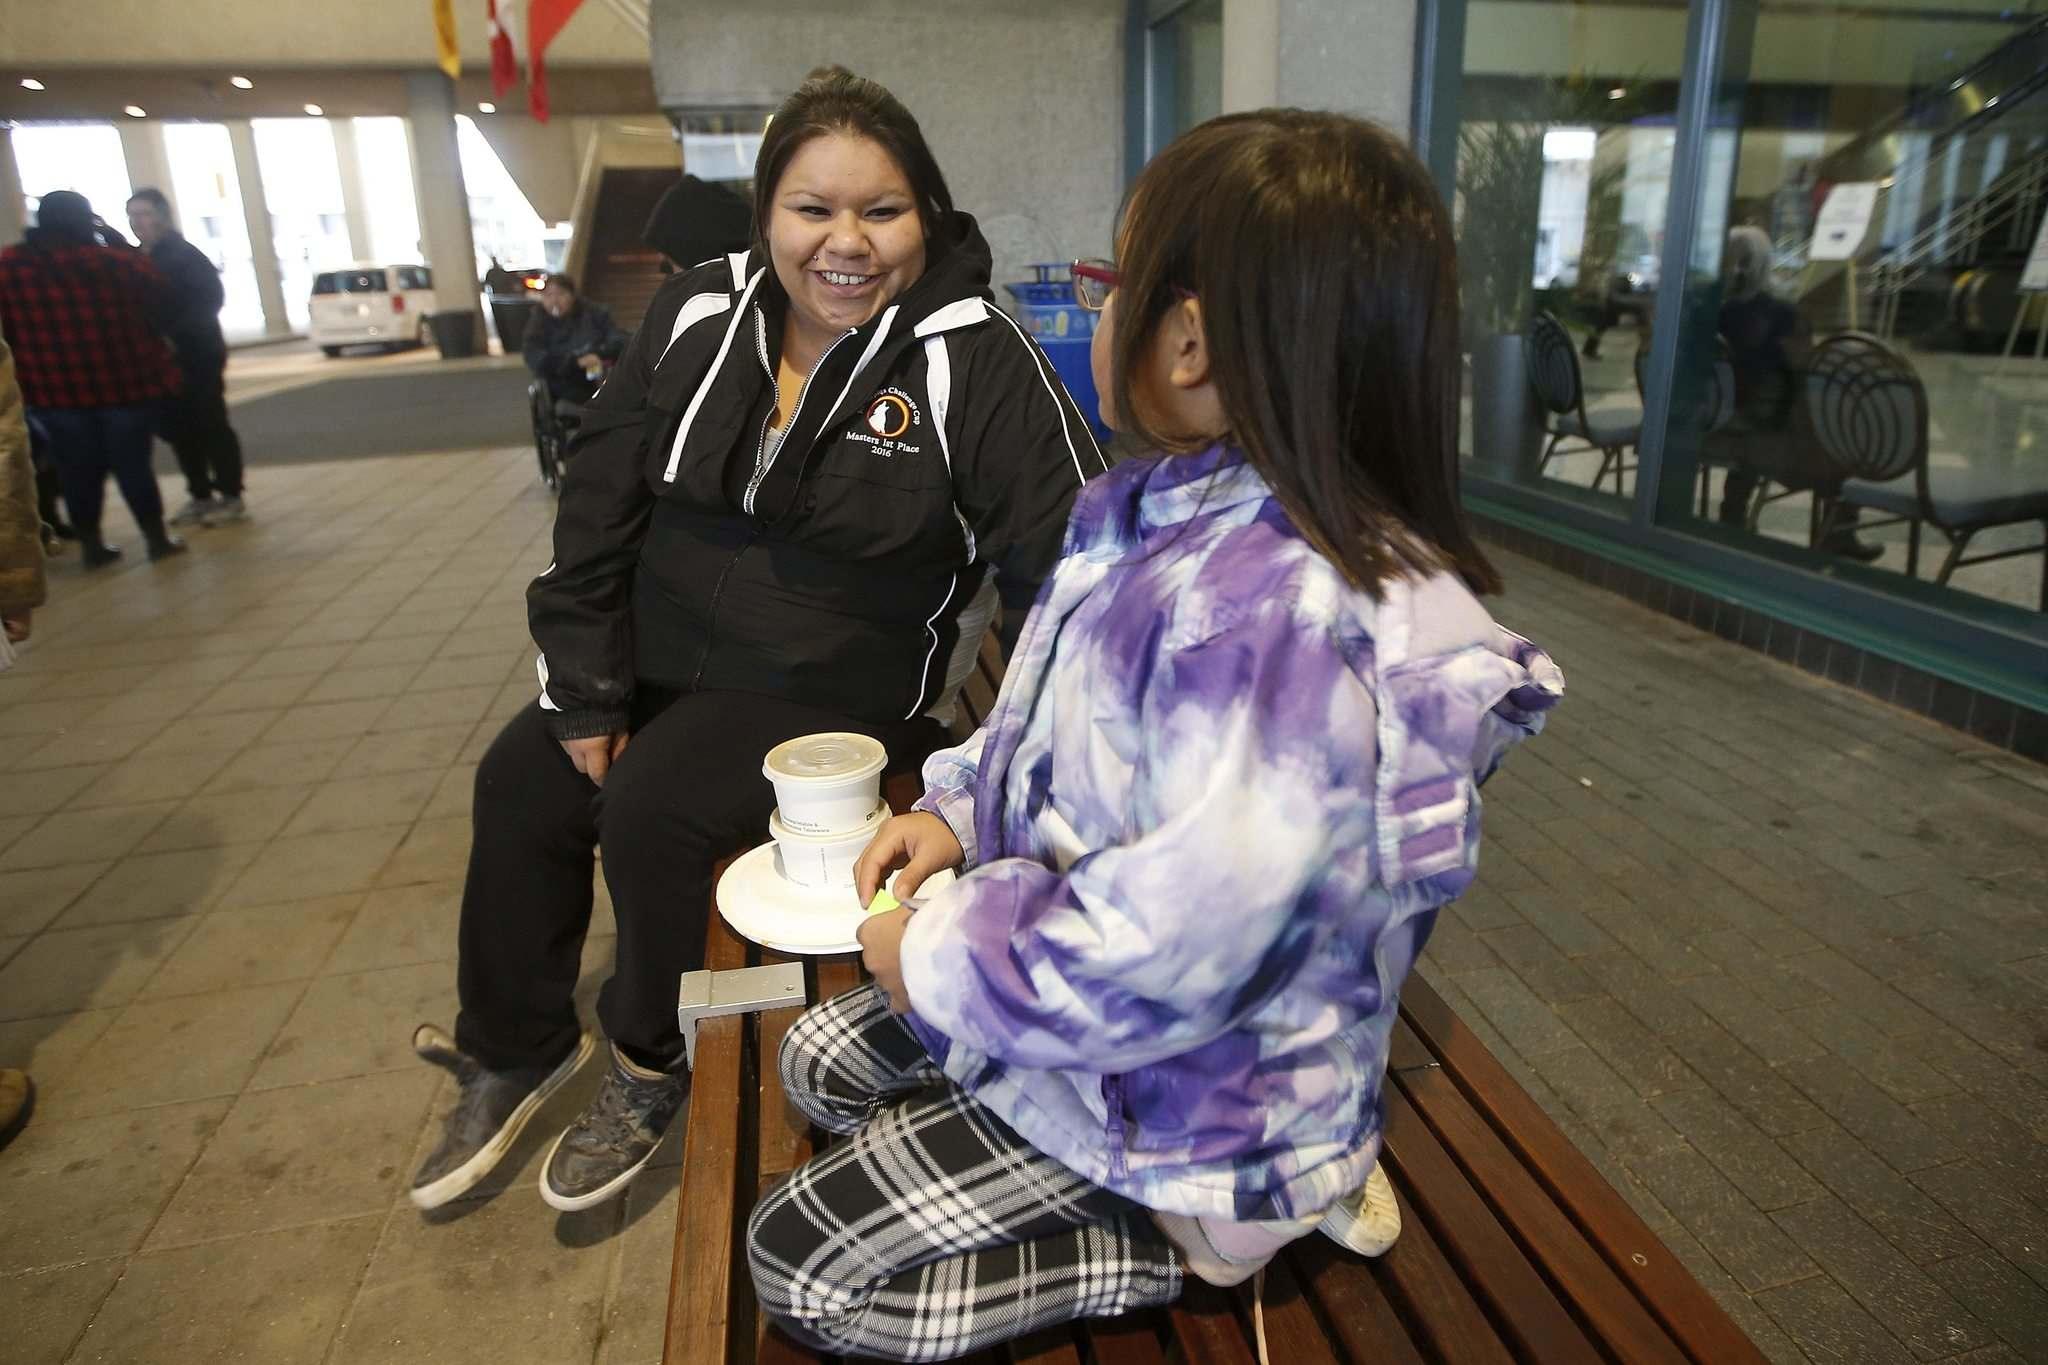 Tysha Assiniboine, from Dakota Plains First Nation, talks to her daughter Gracie outside the convention centre Tuesday. (John Woods / Winnipeg Free Press)